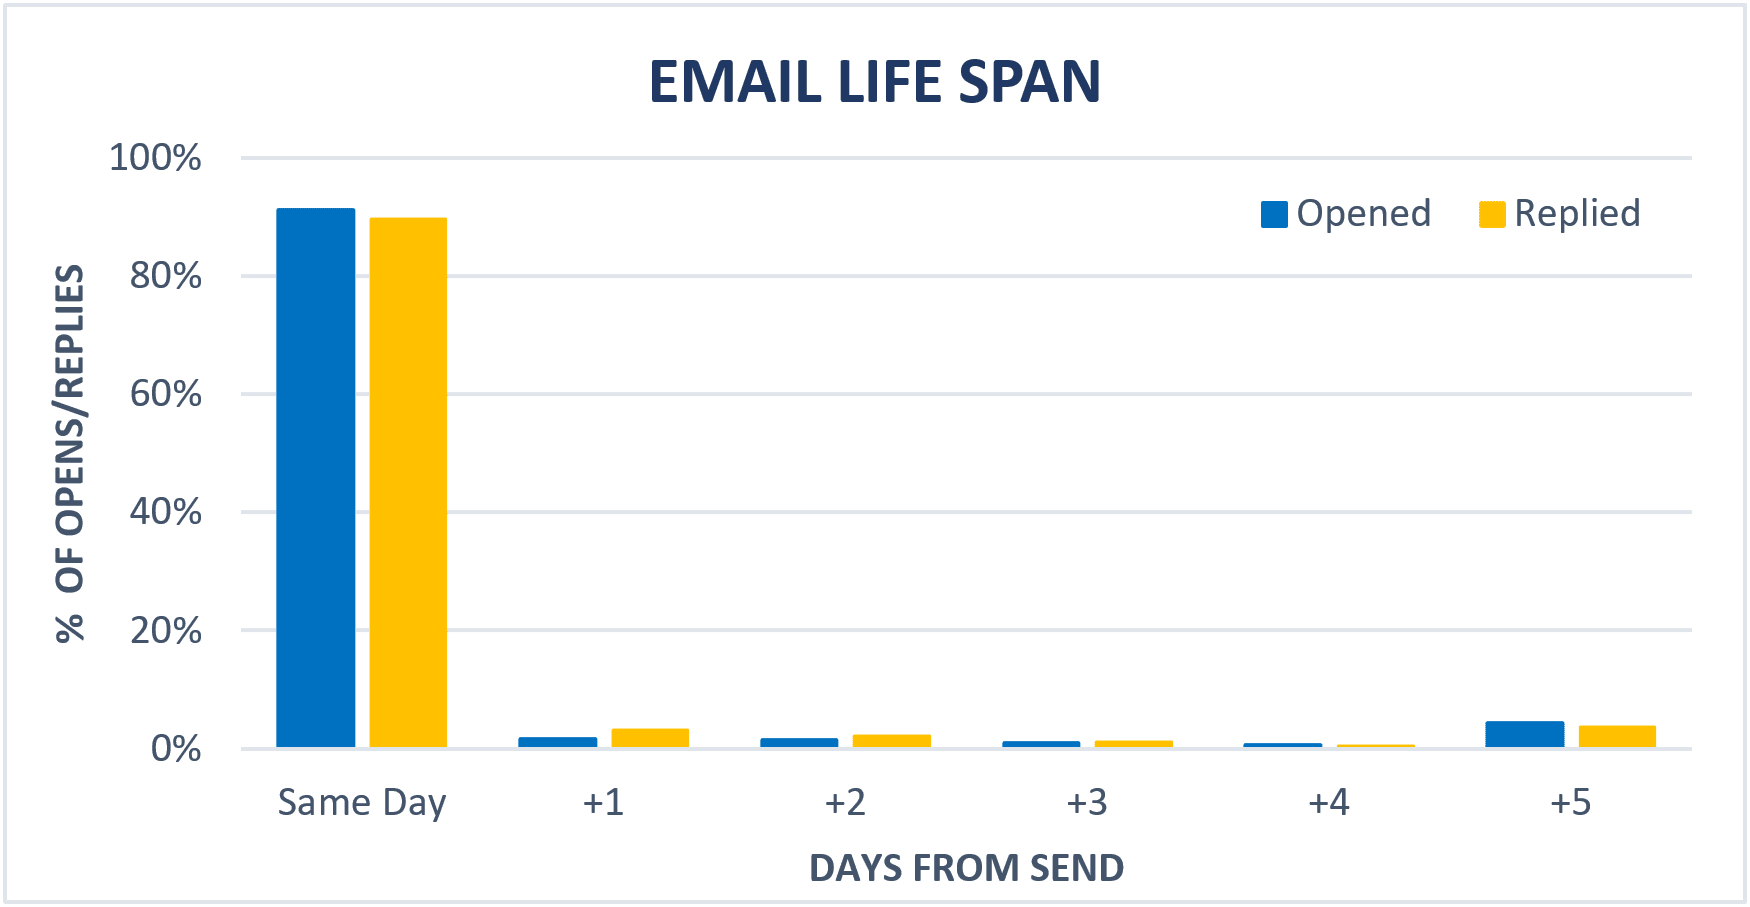 graph showing email life span